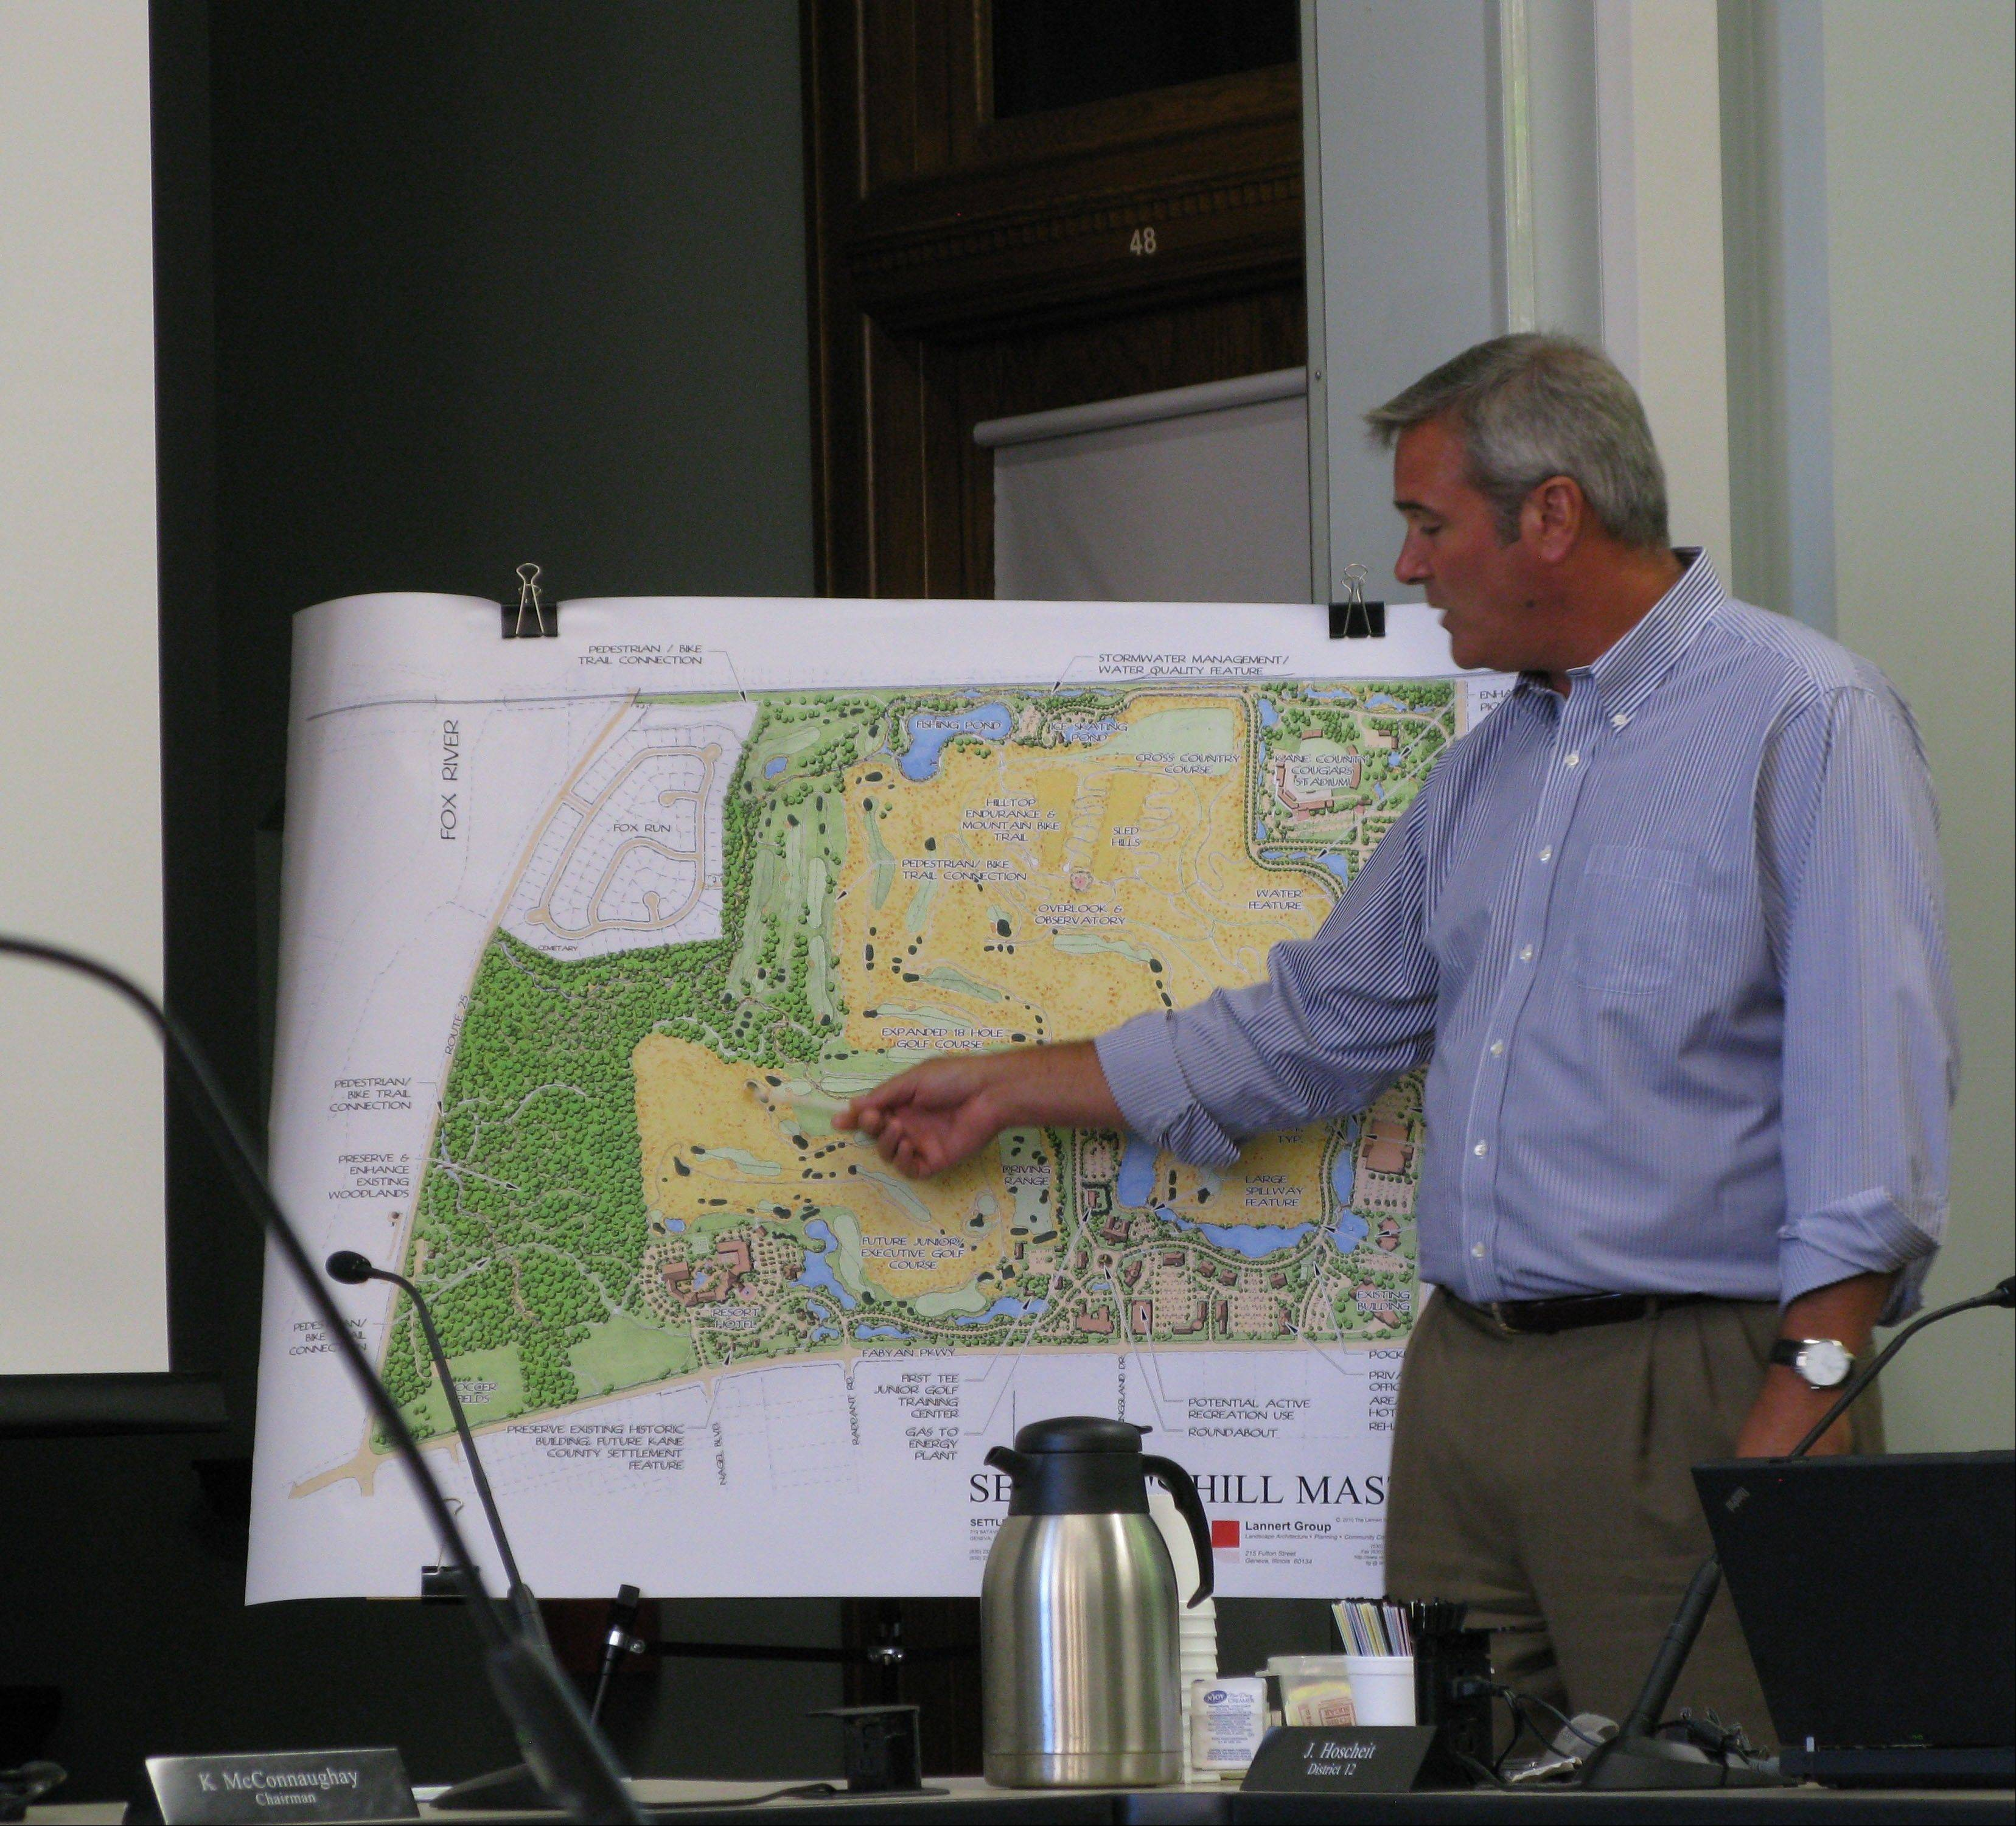 Kane County Board member Mike Donahue Tuesday explained how a volunteer group of local fans of the Fabyan Woods will take over the vision planning for the east branch of the woods. The woods are part of a 700-acre campus on Fabyan Parkway and shown in the left corner of the map.